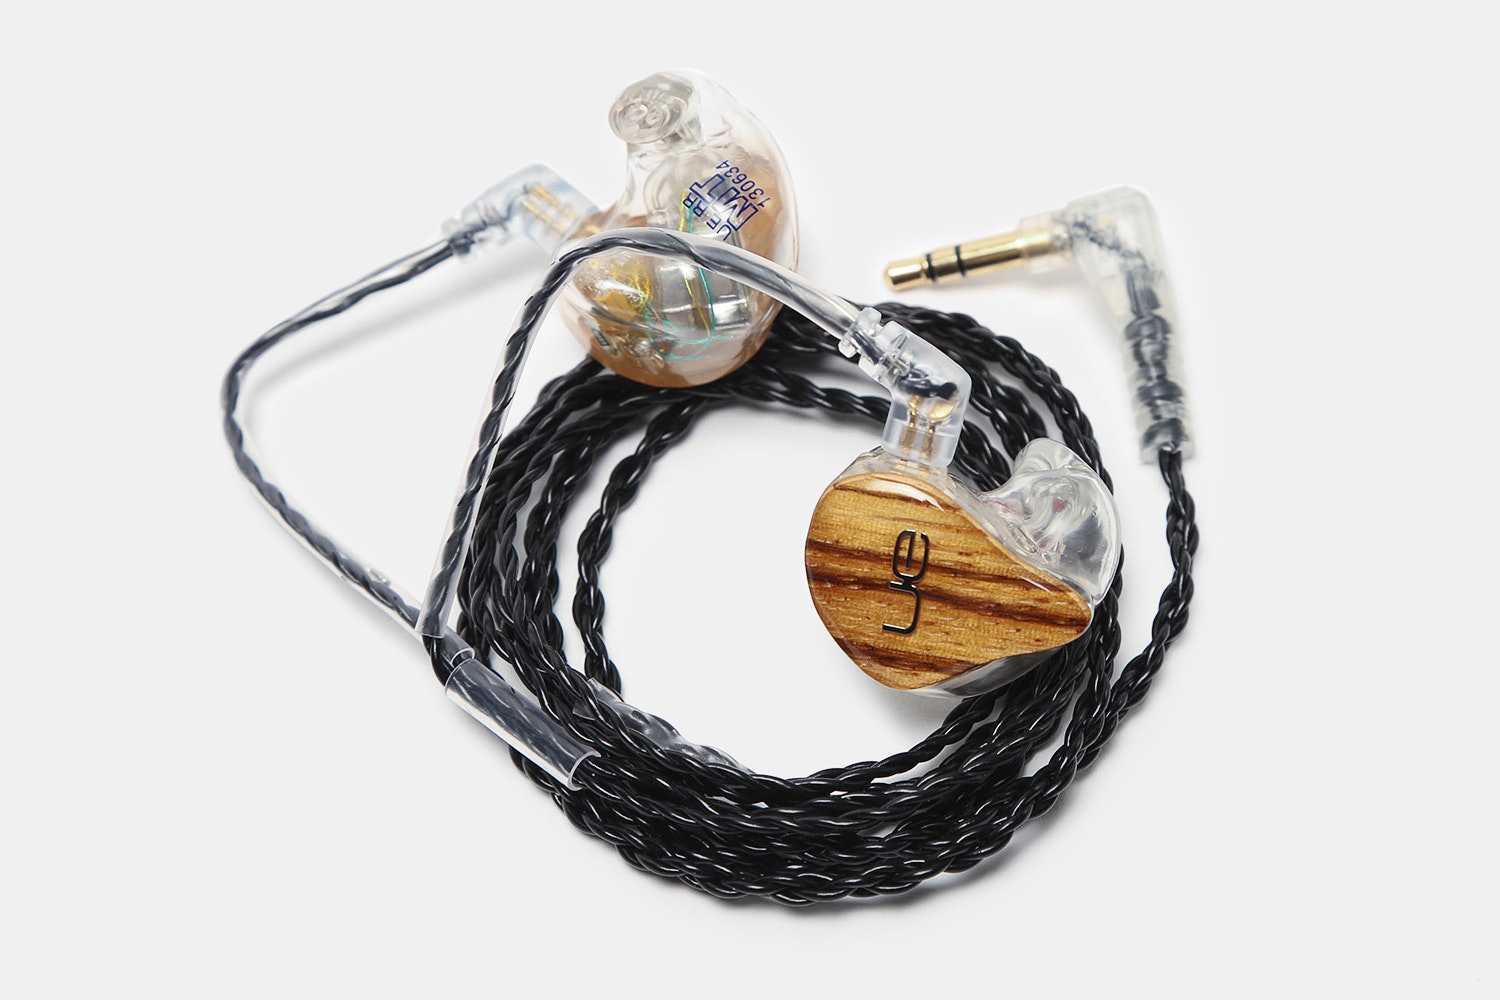 Ultimate Ears Reference Remastered Zebrawood CIEM